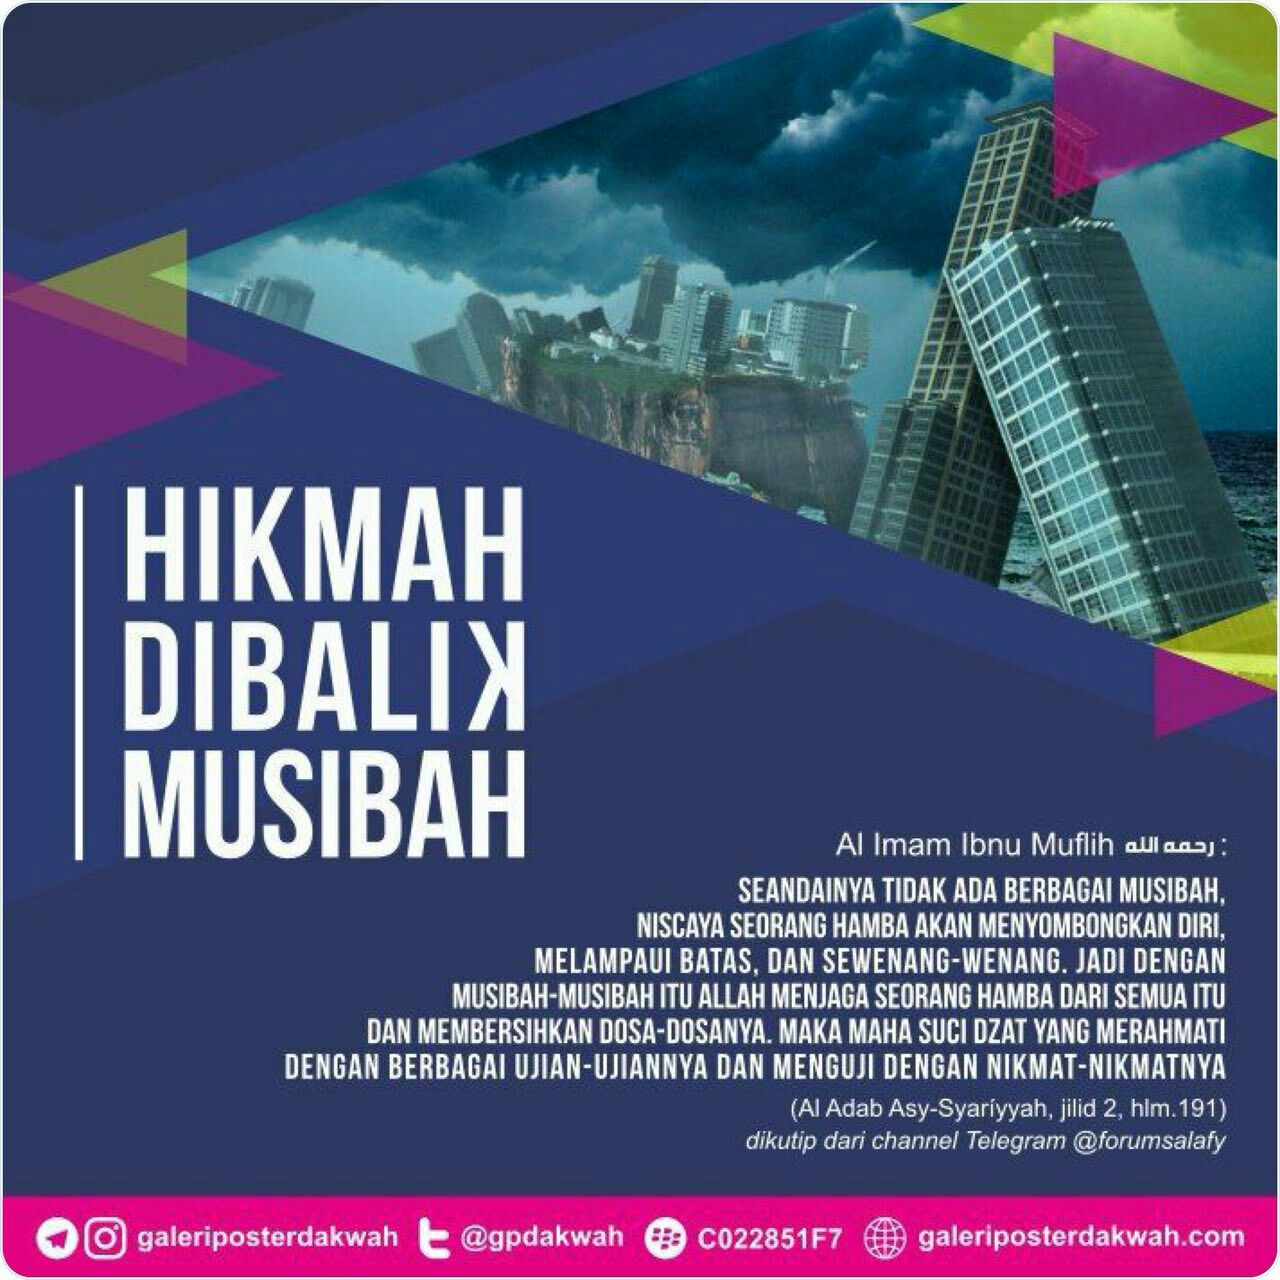 dibalik musibah